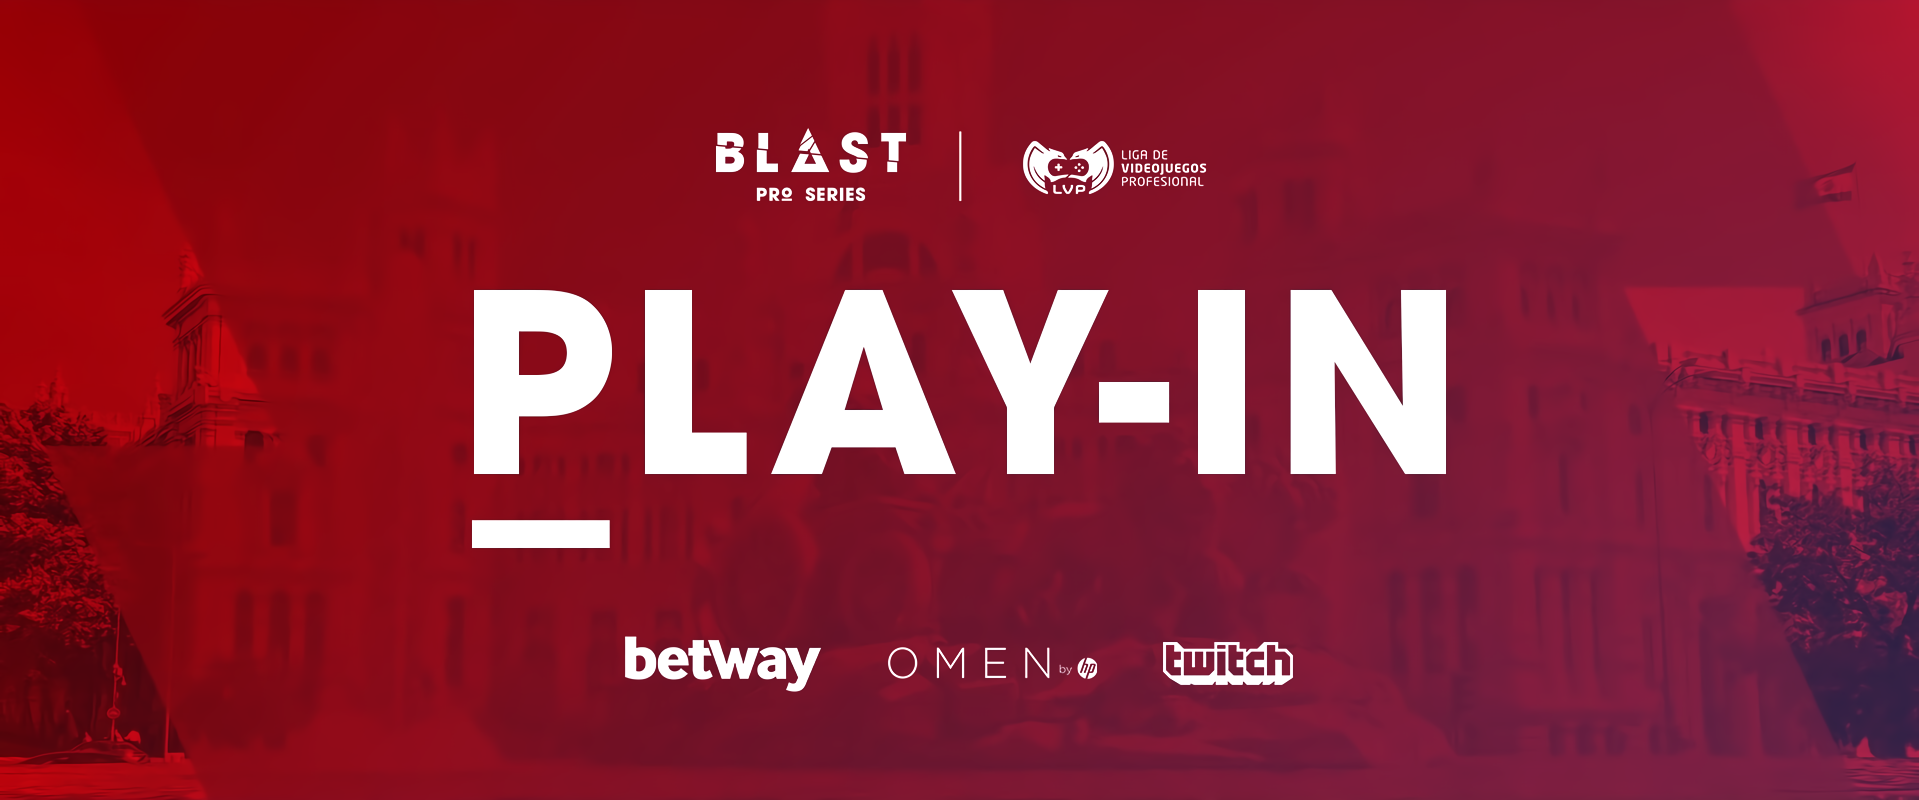 BLAST Pro Series: Madrid 2019 - Iberian Play-In Qualifier